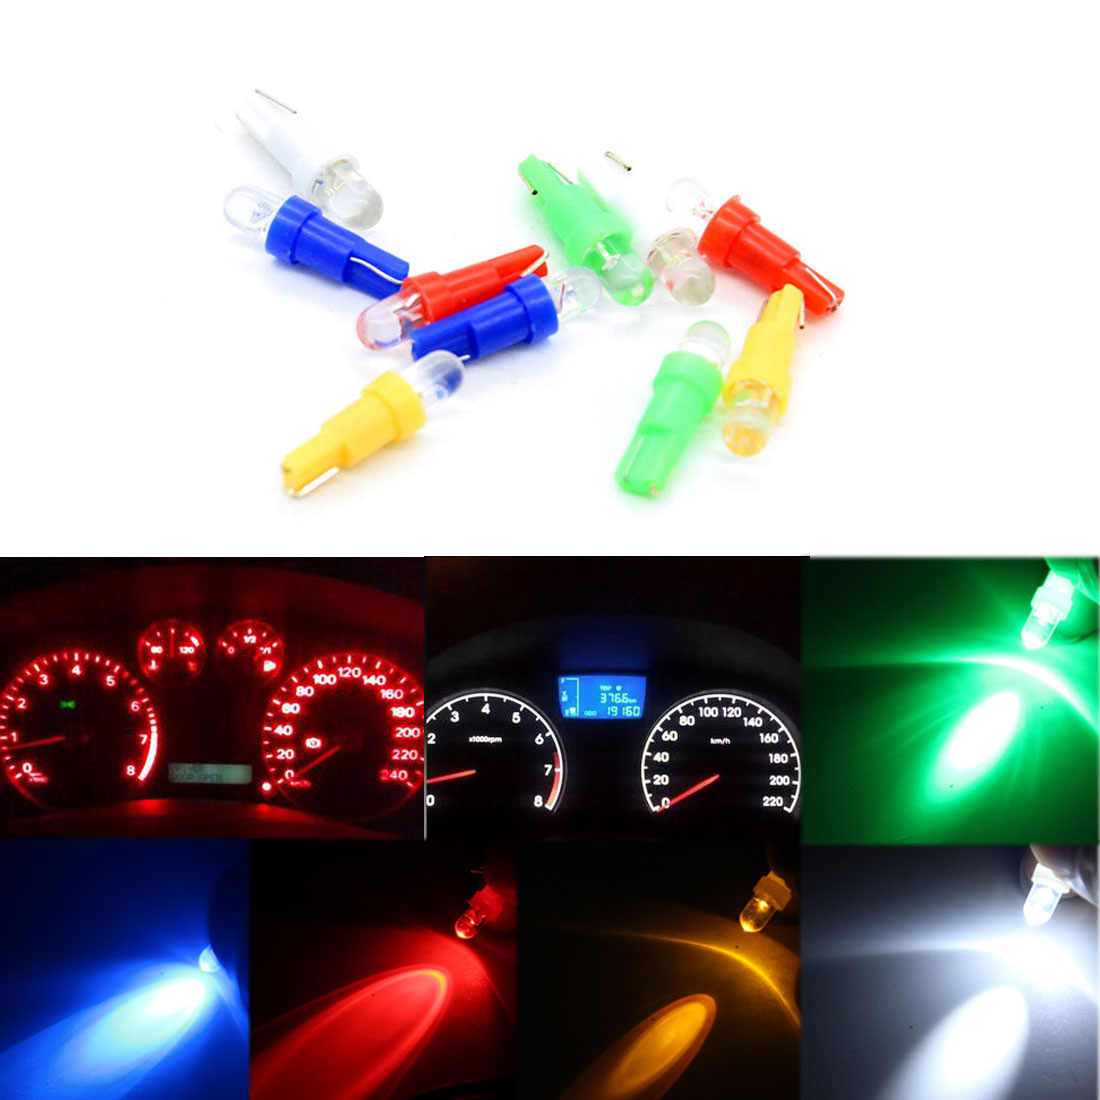 Dongzhen 10PCS T5 LED Car Interior Dashboard Gauge Instrument Car Auto Side Wedge Light Lamp Bulb DC 12V White